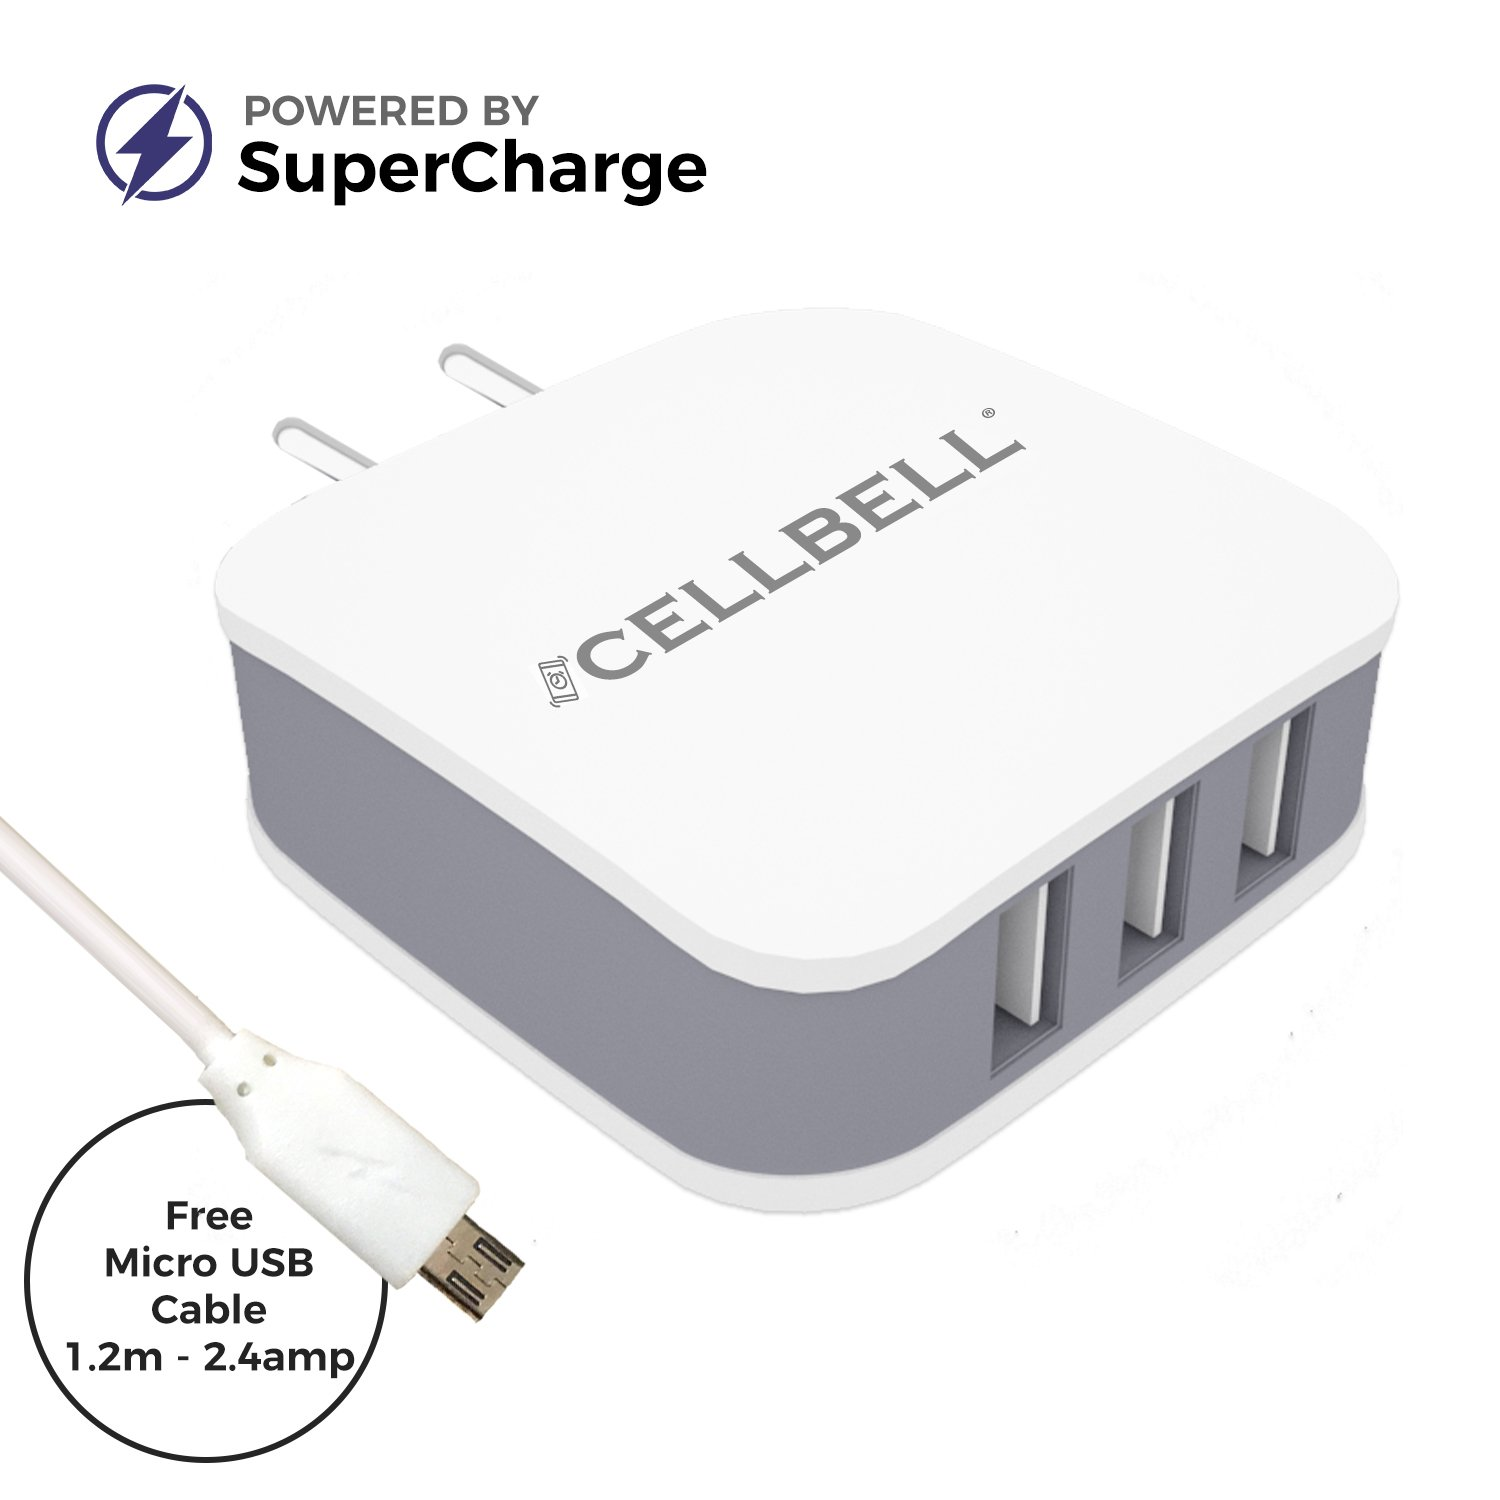 Chargers cables buy chargers cables online at best prices in hot new releases greentooth Image collections